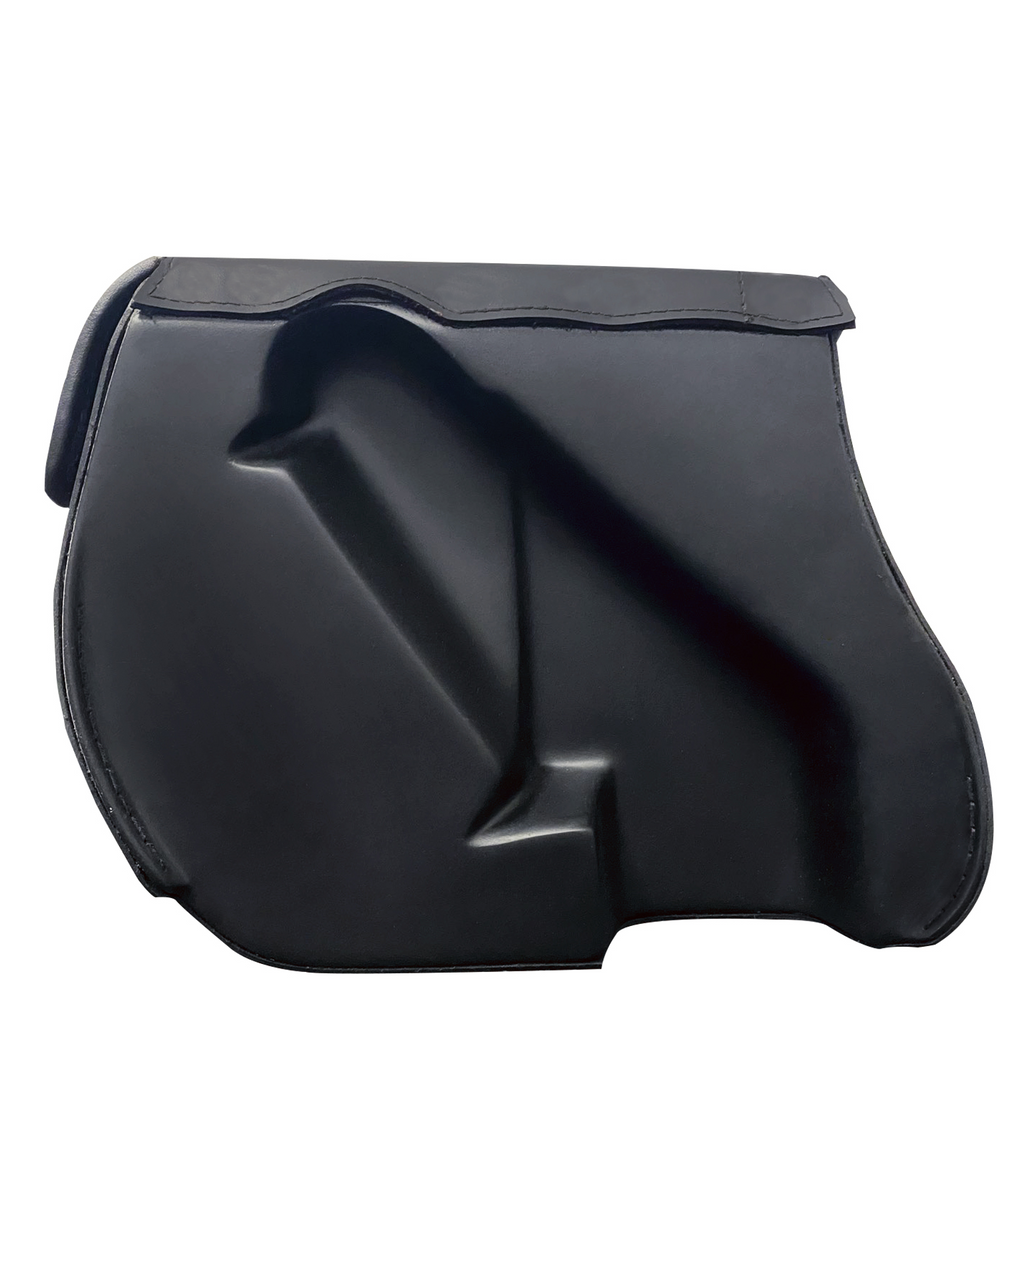 VikingBags Specific Medium Double Strap Shock Cutout Motorcycle Saddlebags For Harley Dyna Street Bob FXDB Shock Cutout View